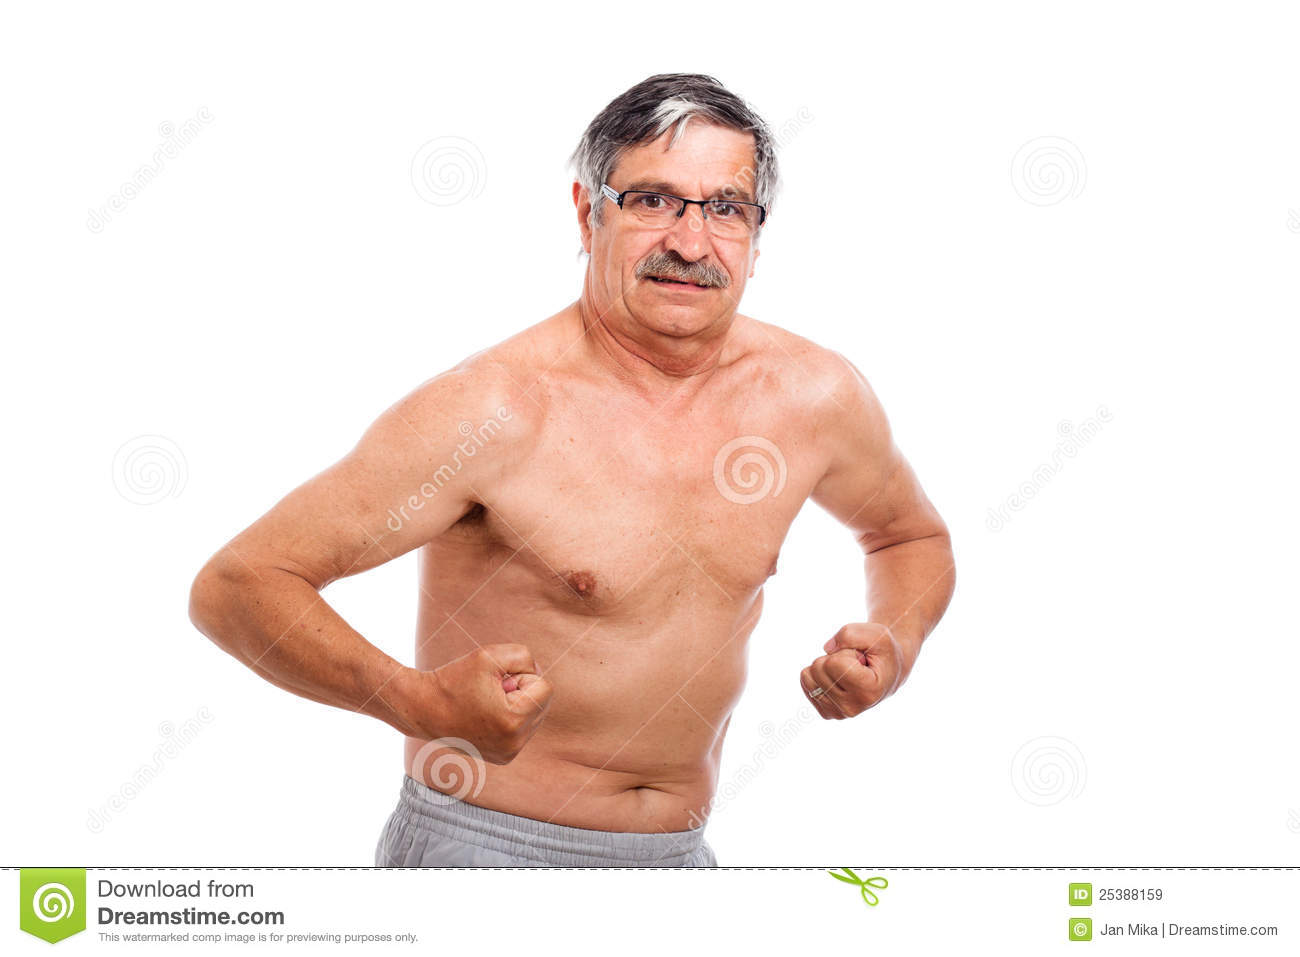 Senior Man Showing Muscles Royalty Free Stock Images - Image: 25388159